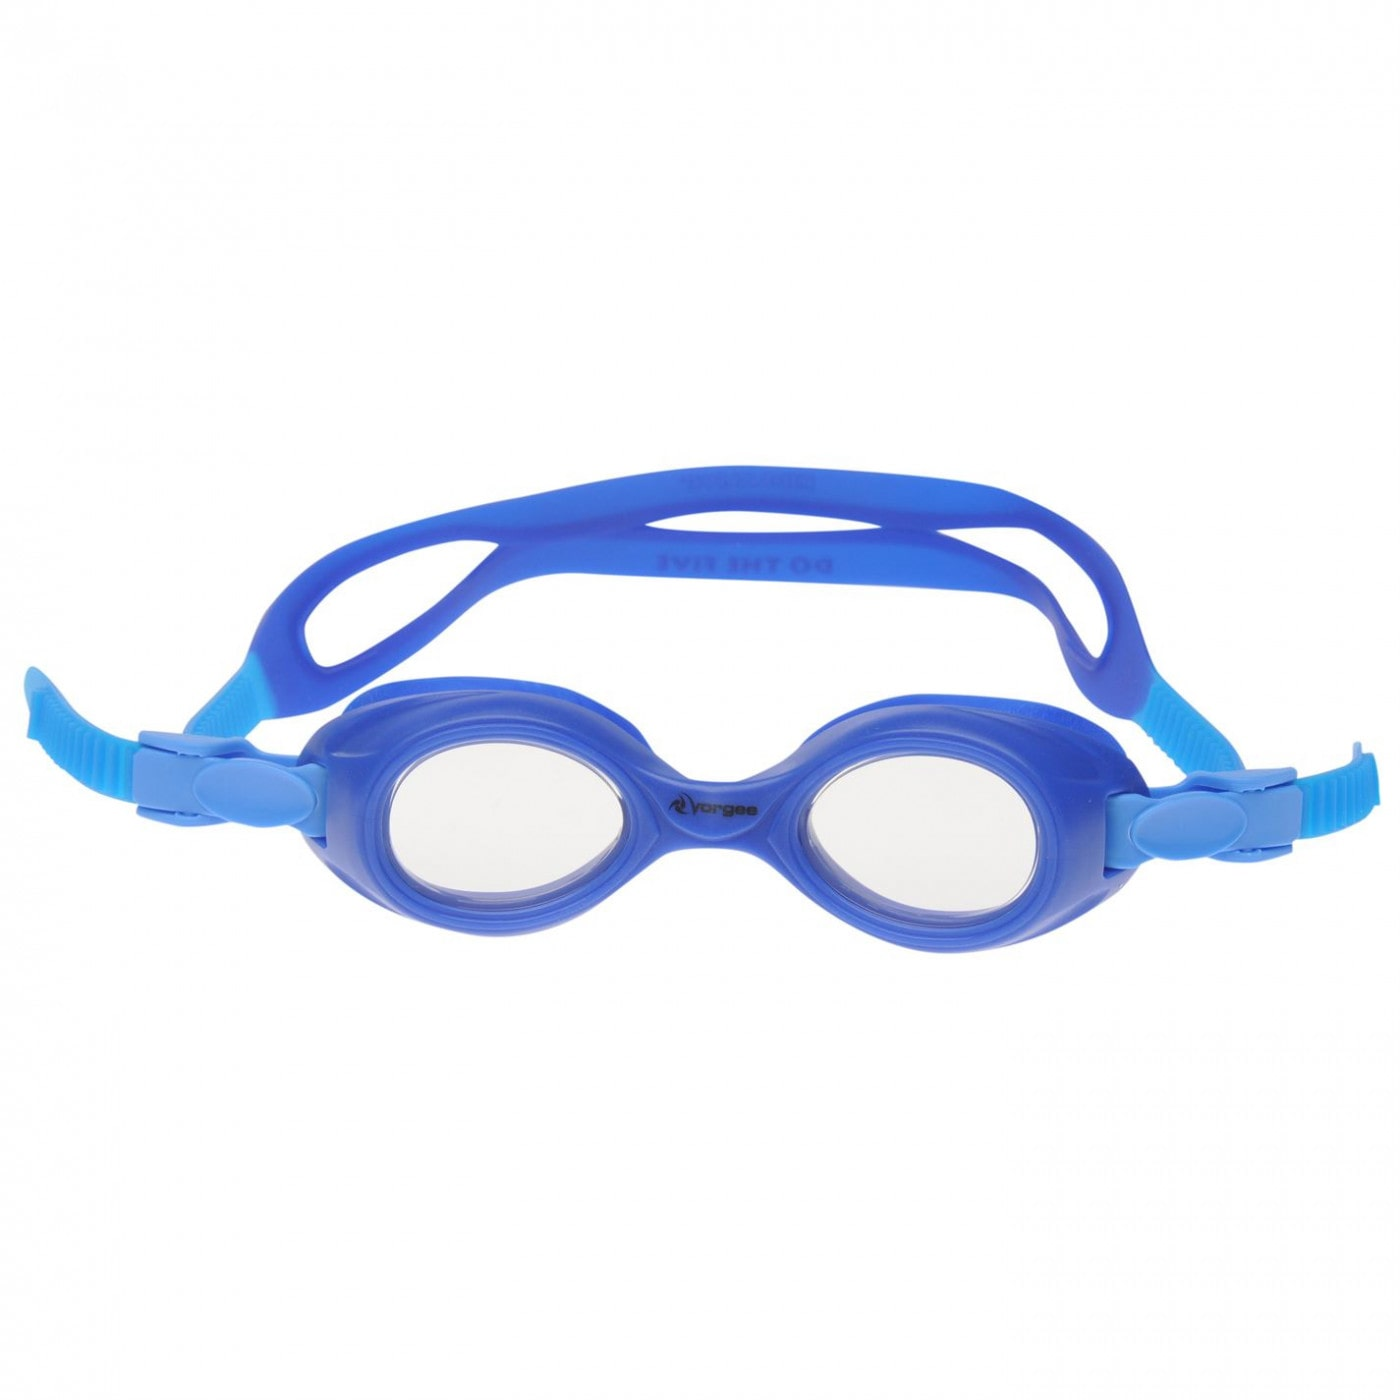 Vorgee Starfish Swimming Goggles Junior